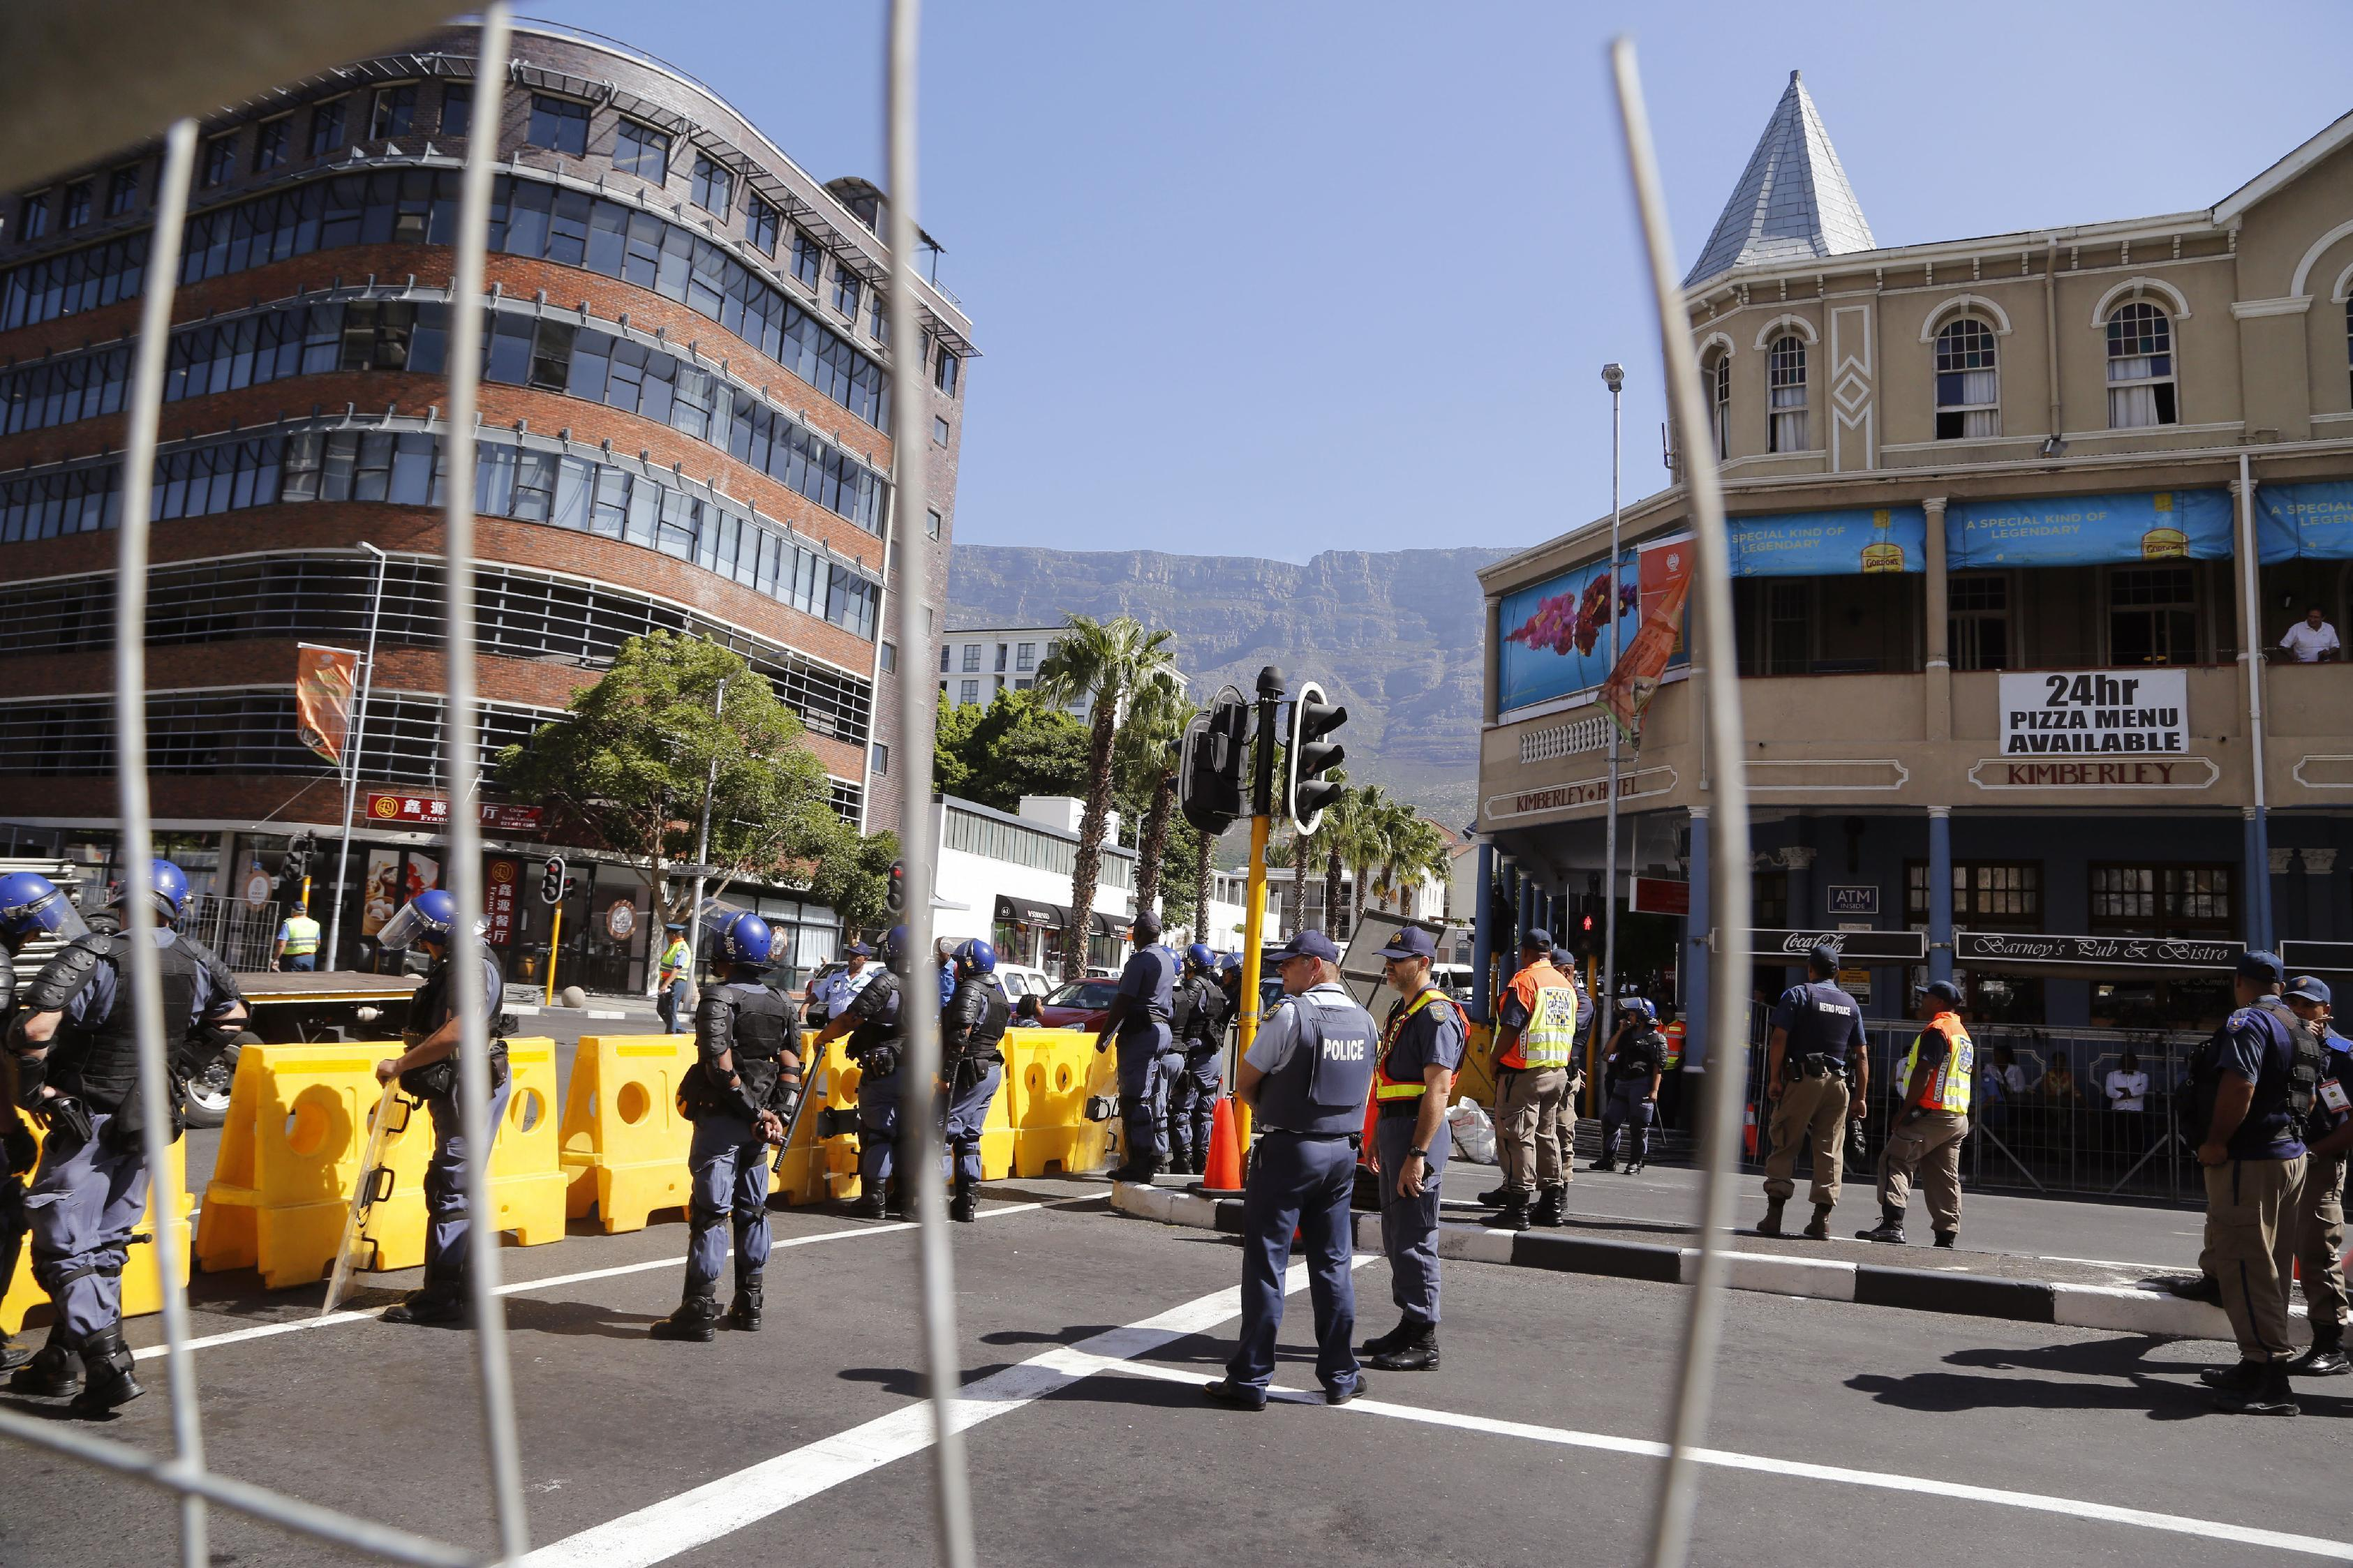 Protests inside, outside during South African nation speech